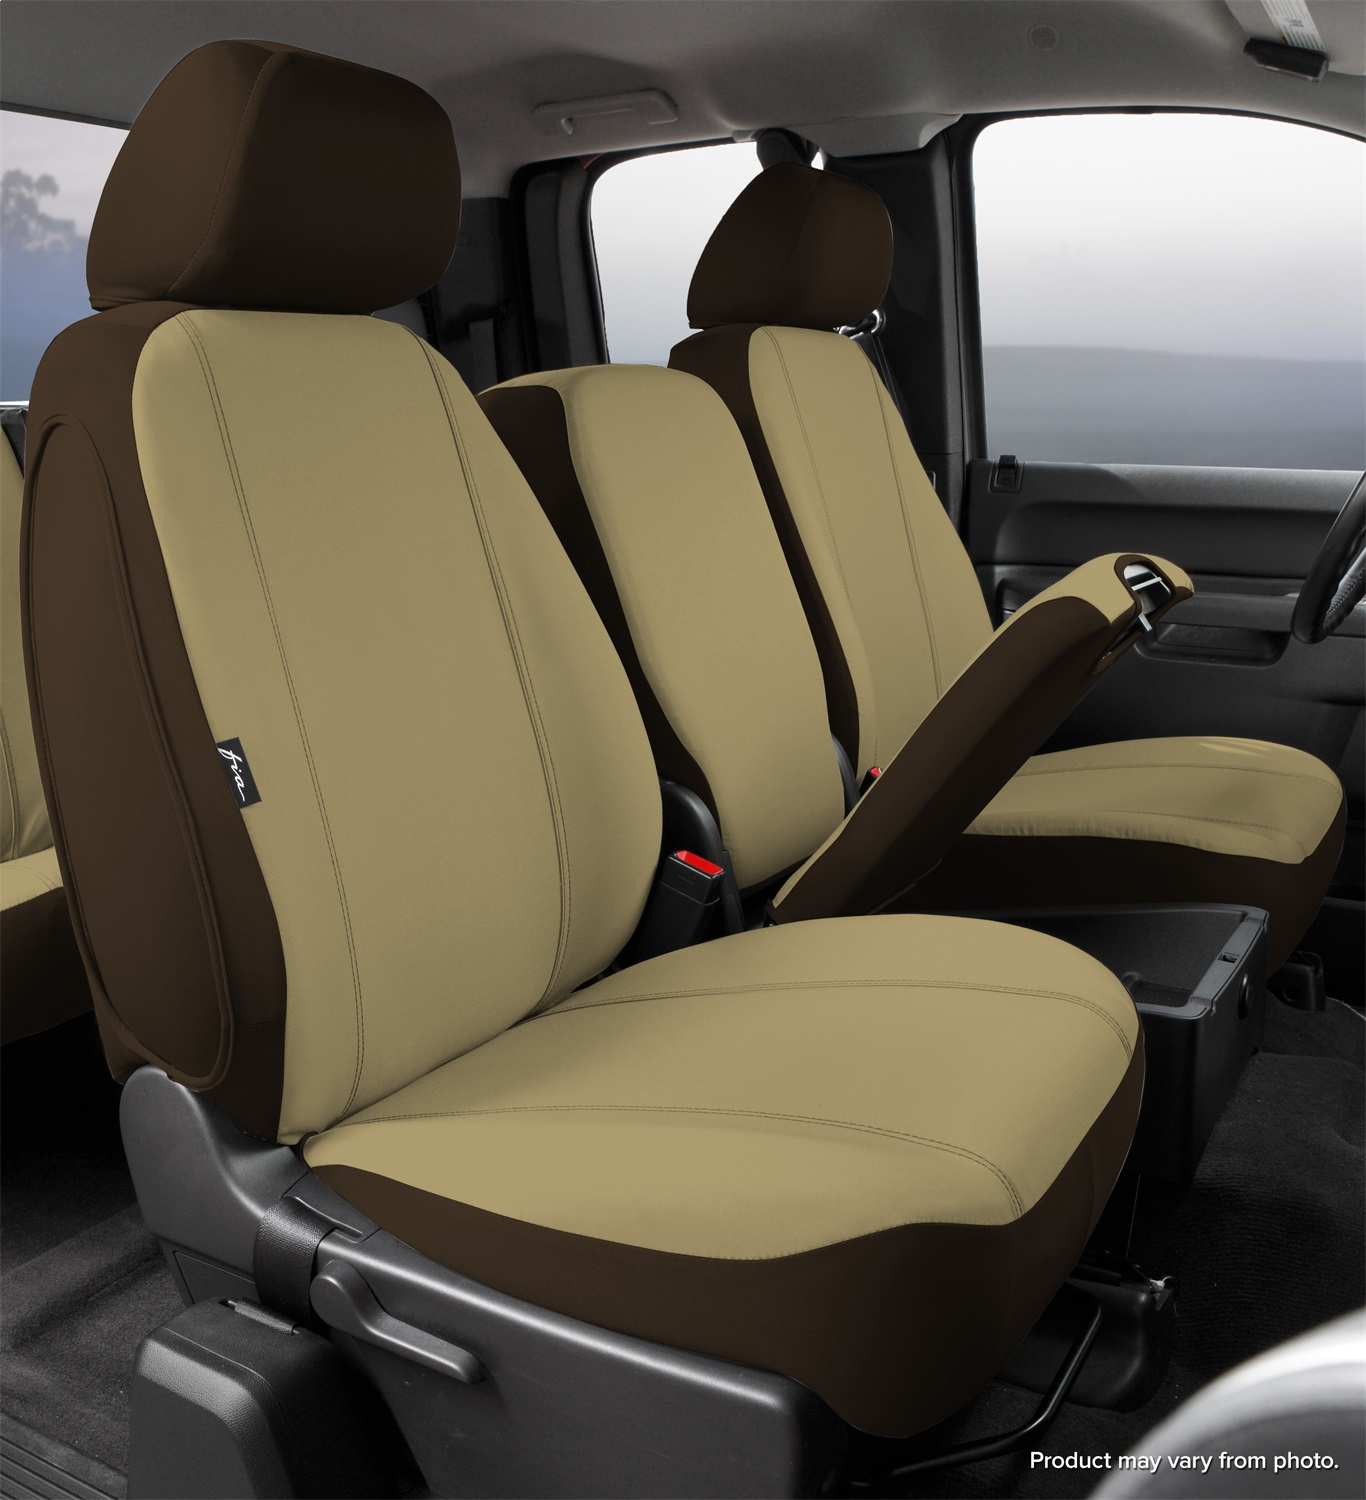 Fia SP88-23TAUPE Seat Protector Custom Seat Cover - image 1 of 2